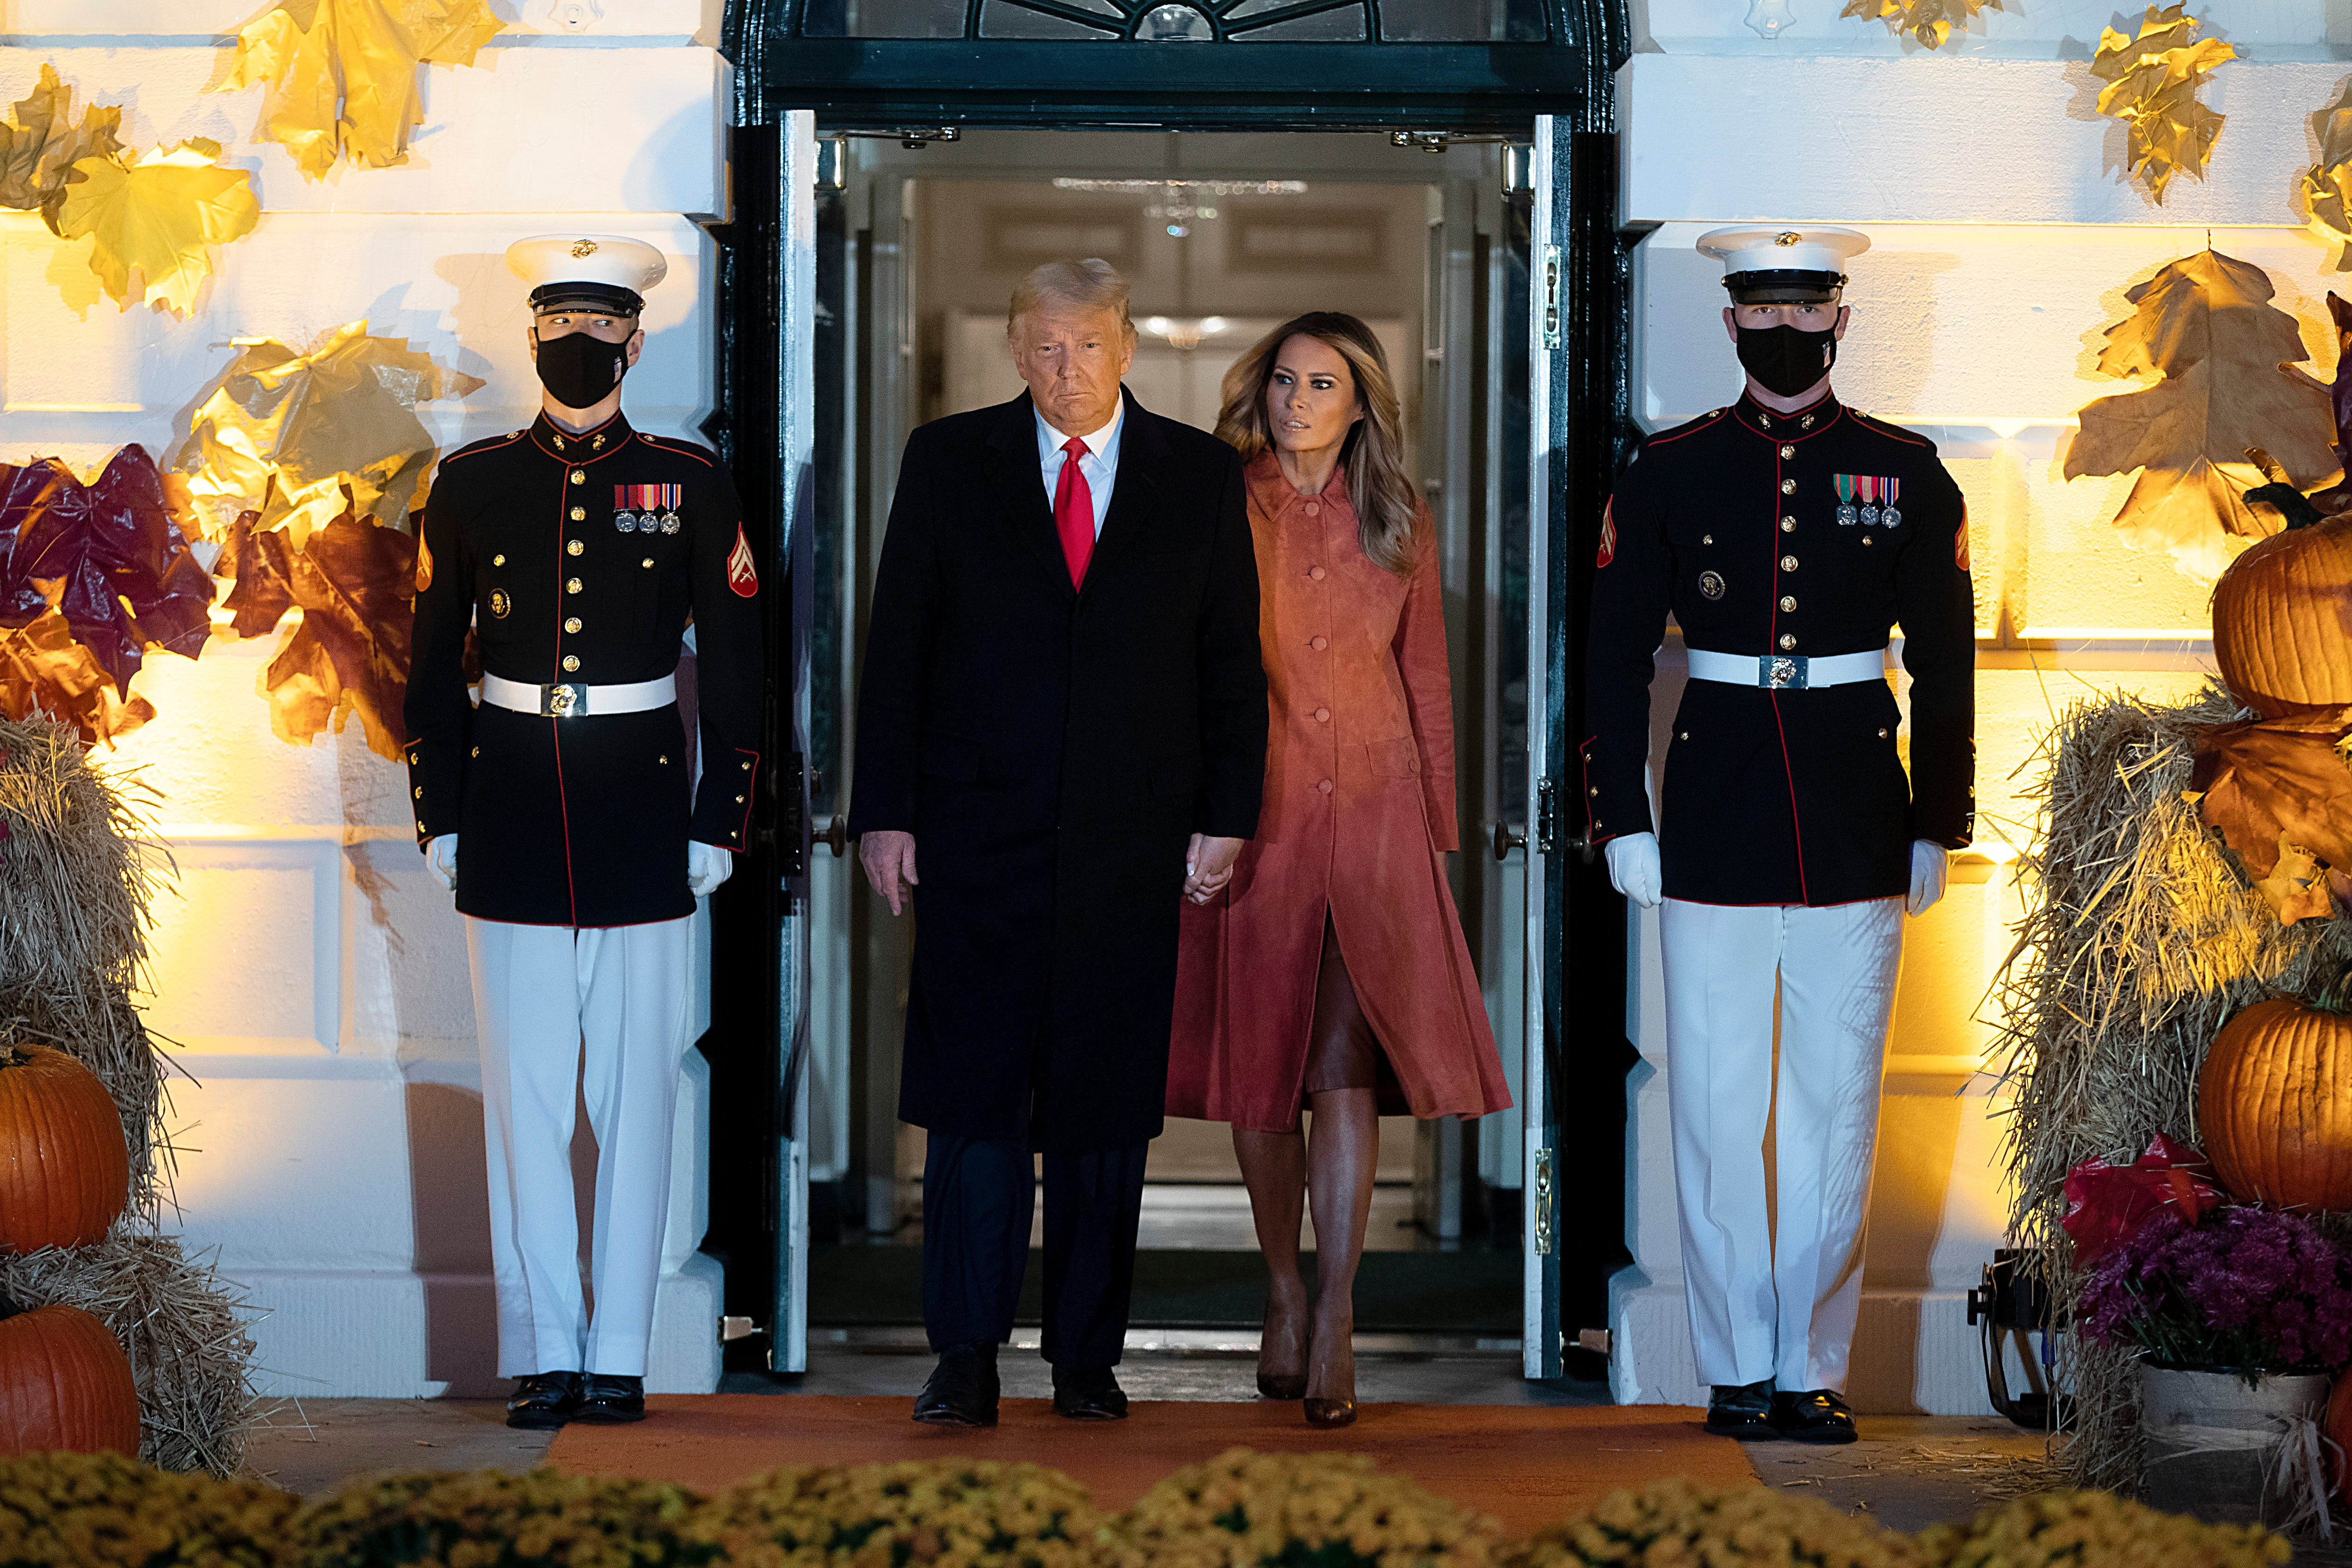 Halloween 2020: Trumps host socially distant trick-or-treating